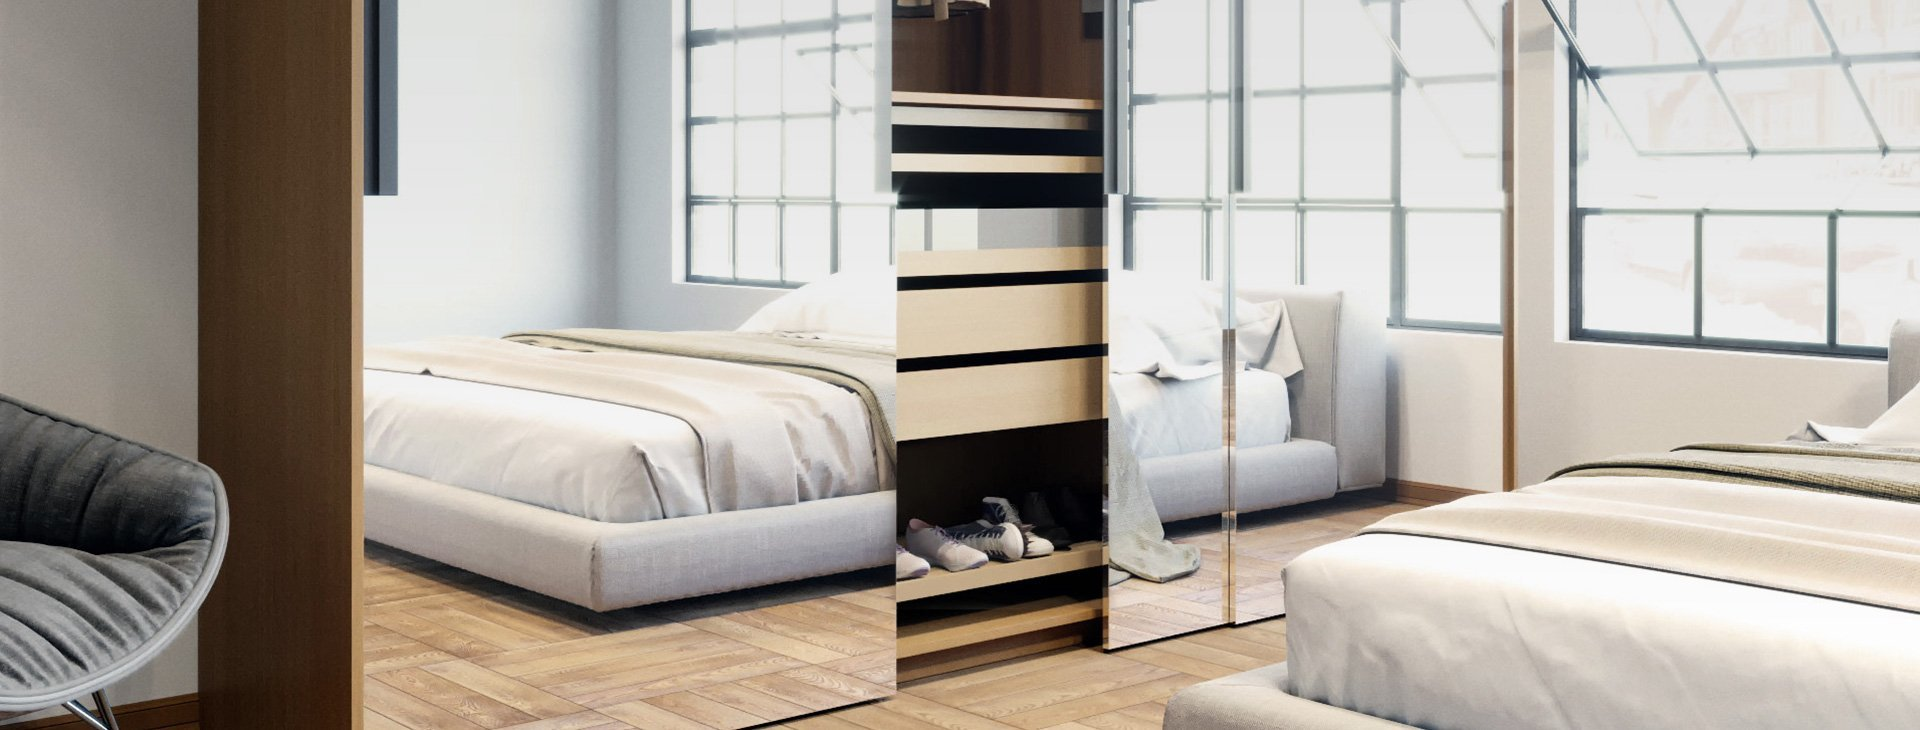 mycs ihre stores im stilwerk hamburg. Black Bedroom Furniture Sets. Home Design Ideas